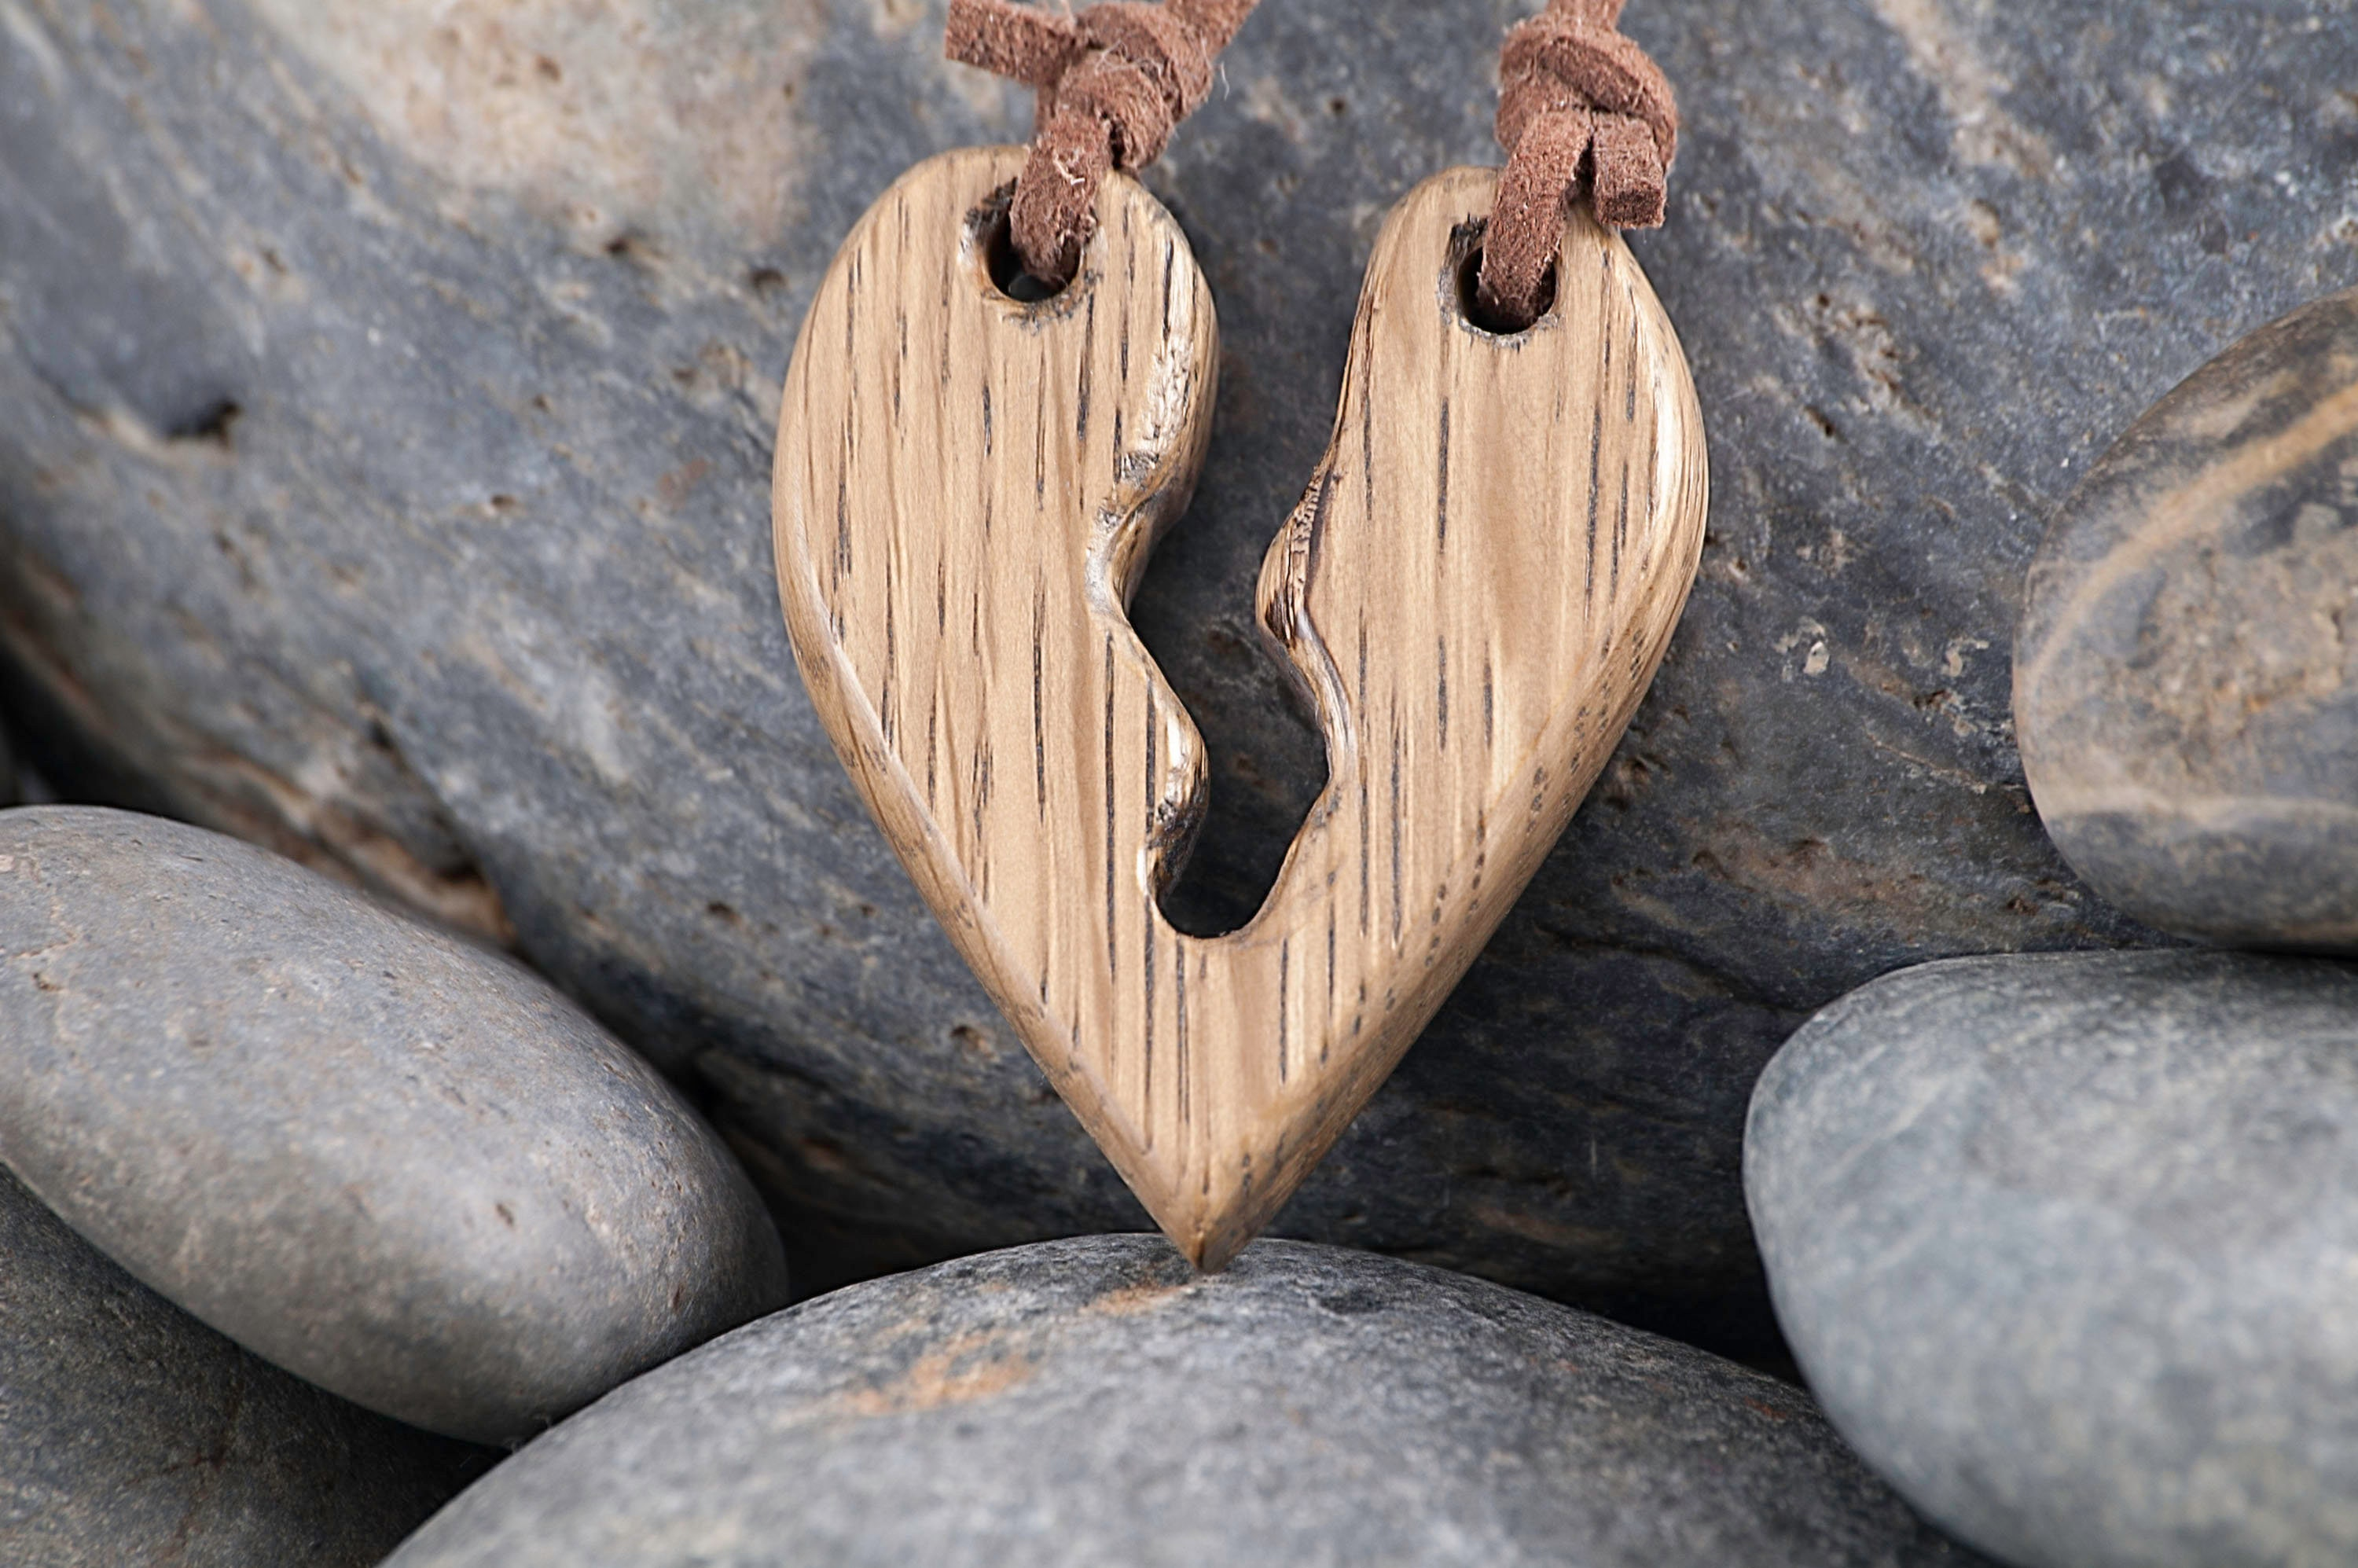 437688970c6c1 Wooden Cracked Heart Pendant on a Suede Cord